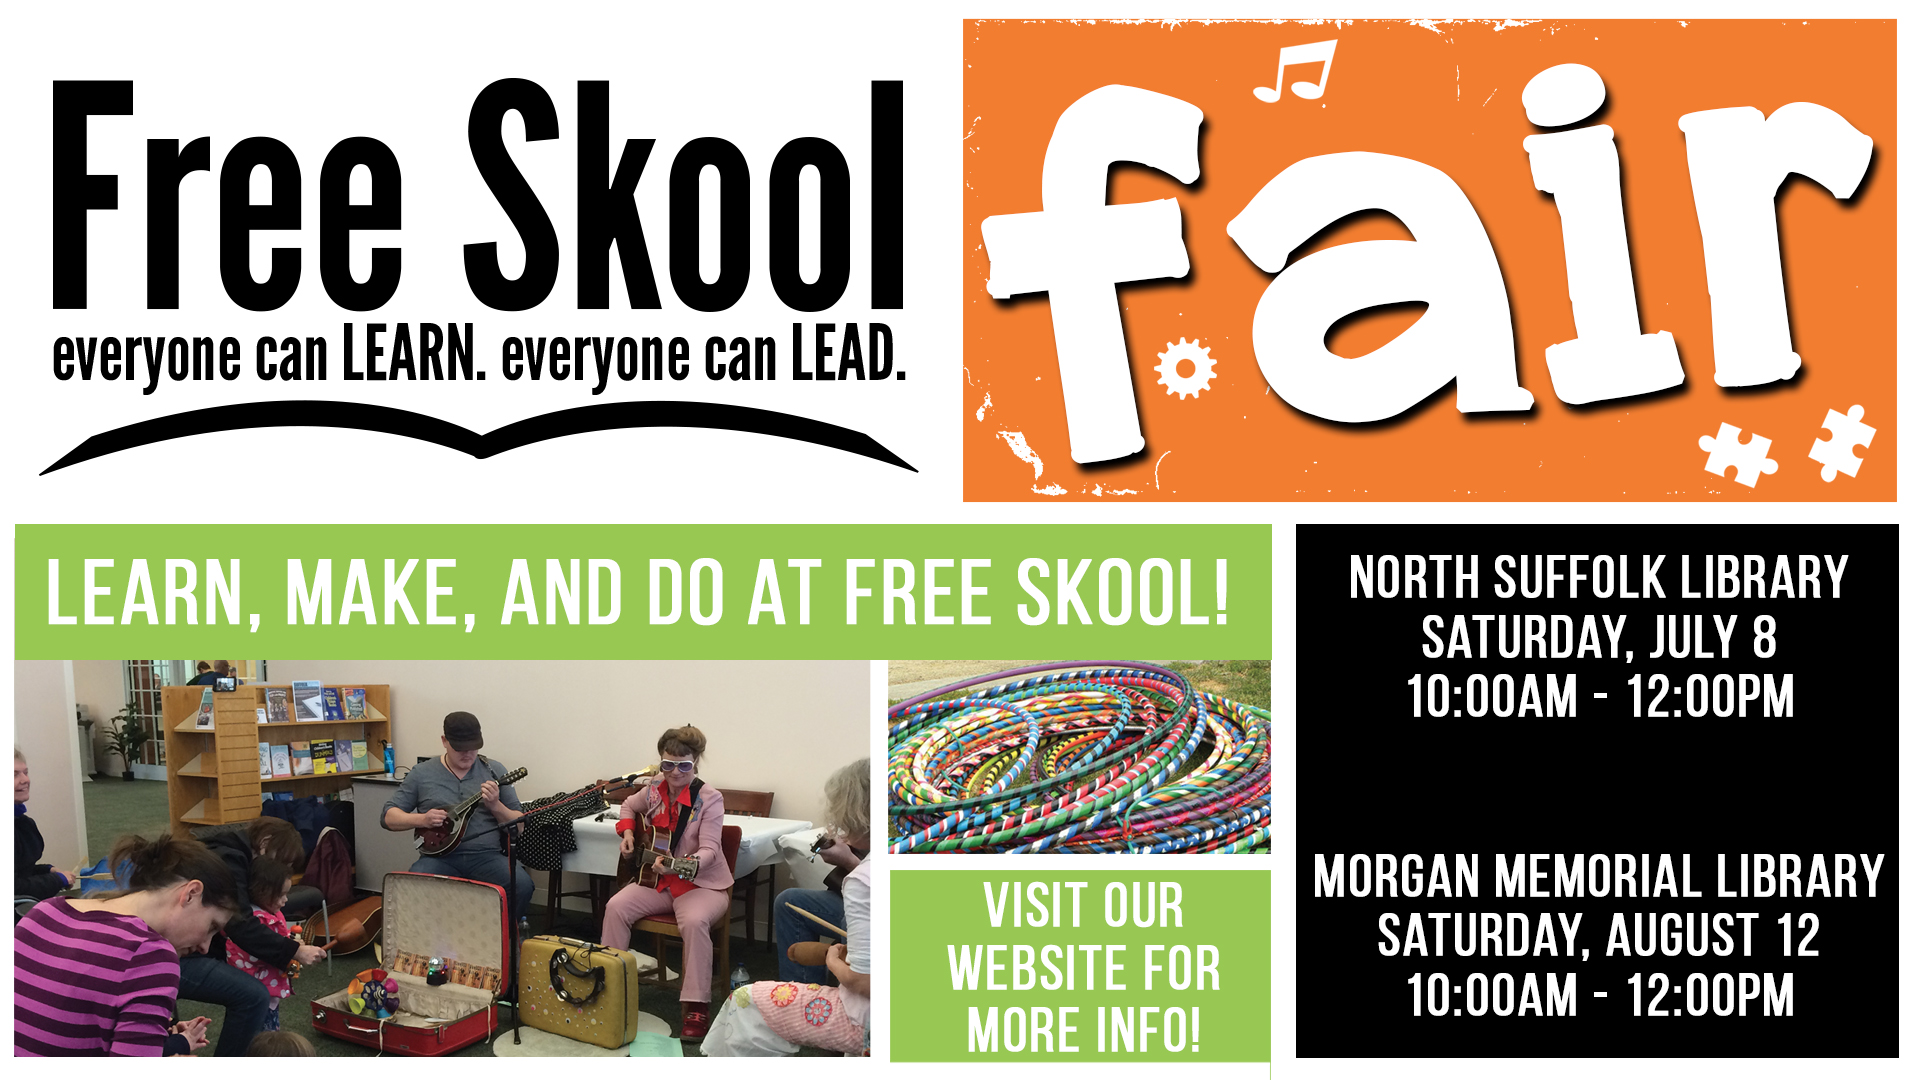 Sizzling Saturdays: Free Skool Fair